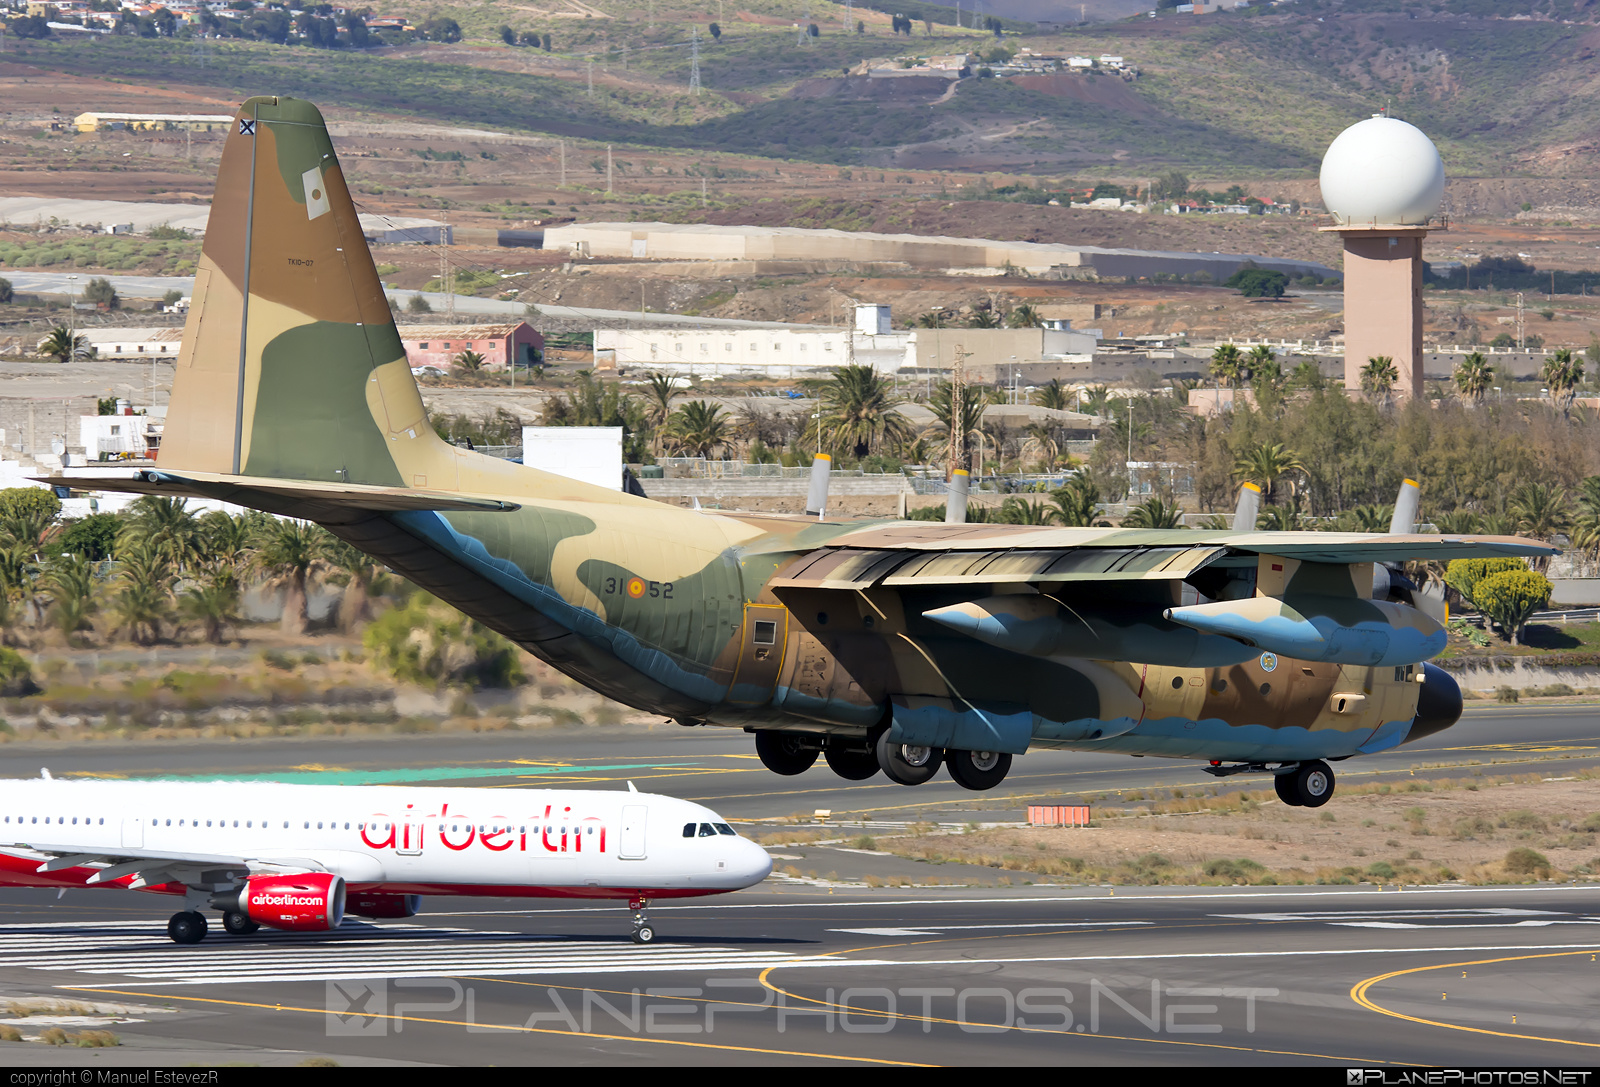 Lockheed C-130H Hercules - TK.10-07 operated by Ejército del Aire (Spanish Air Force) #ejercitodelaire #lockheed #spanishairforce